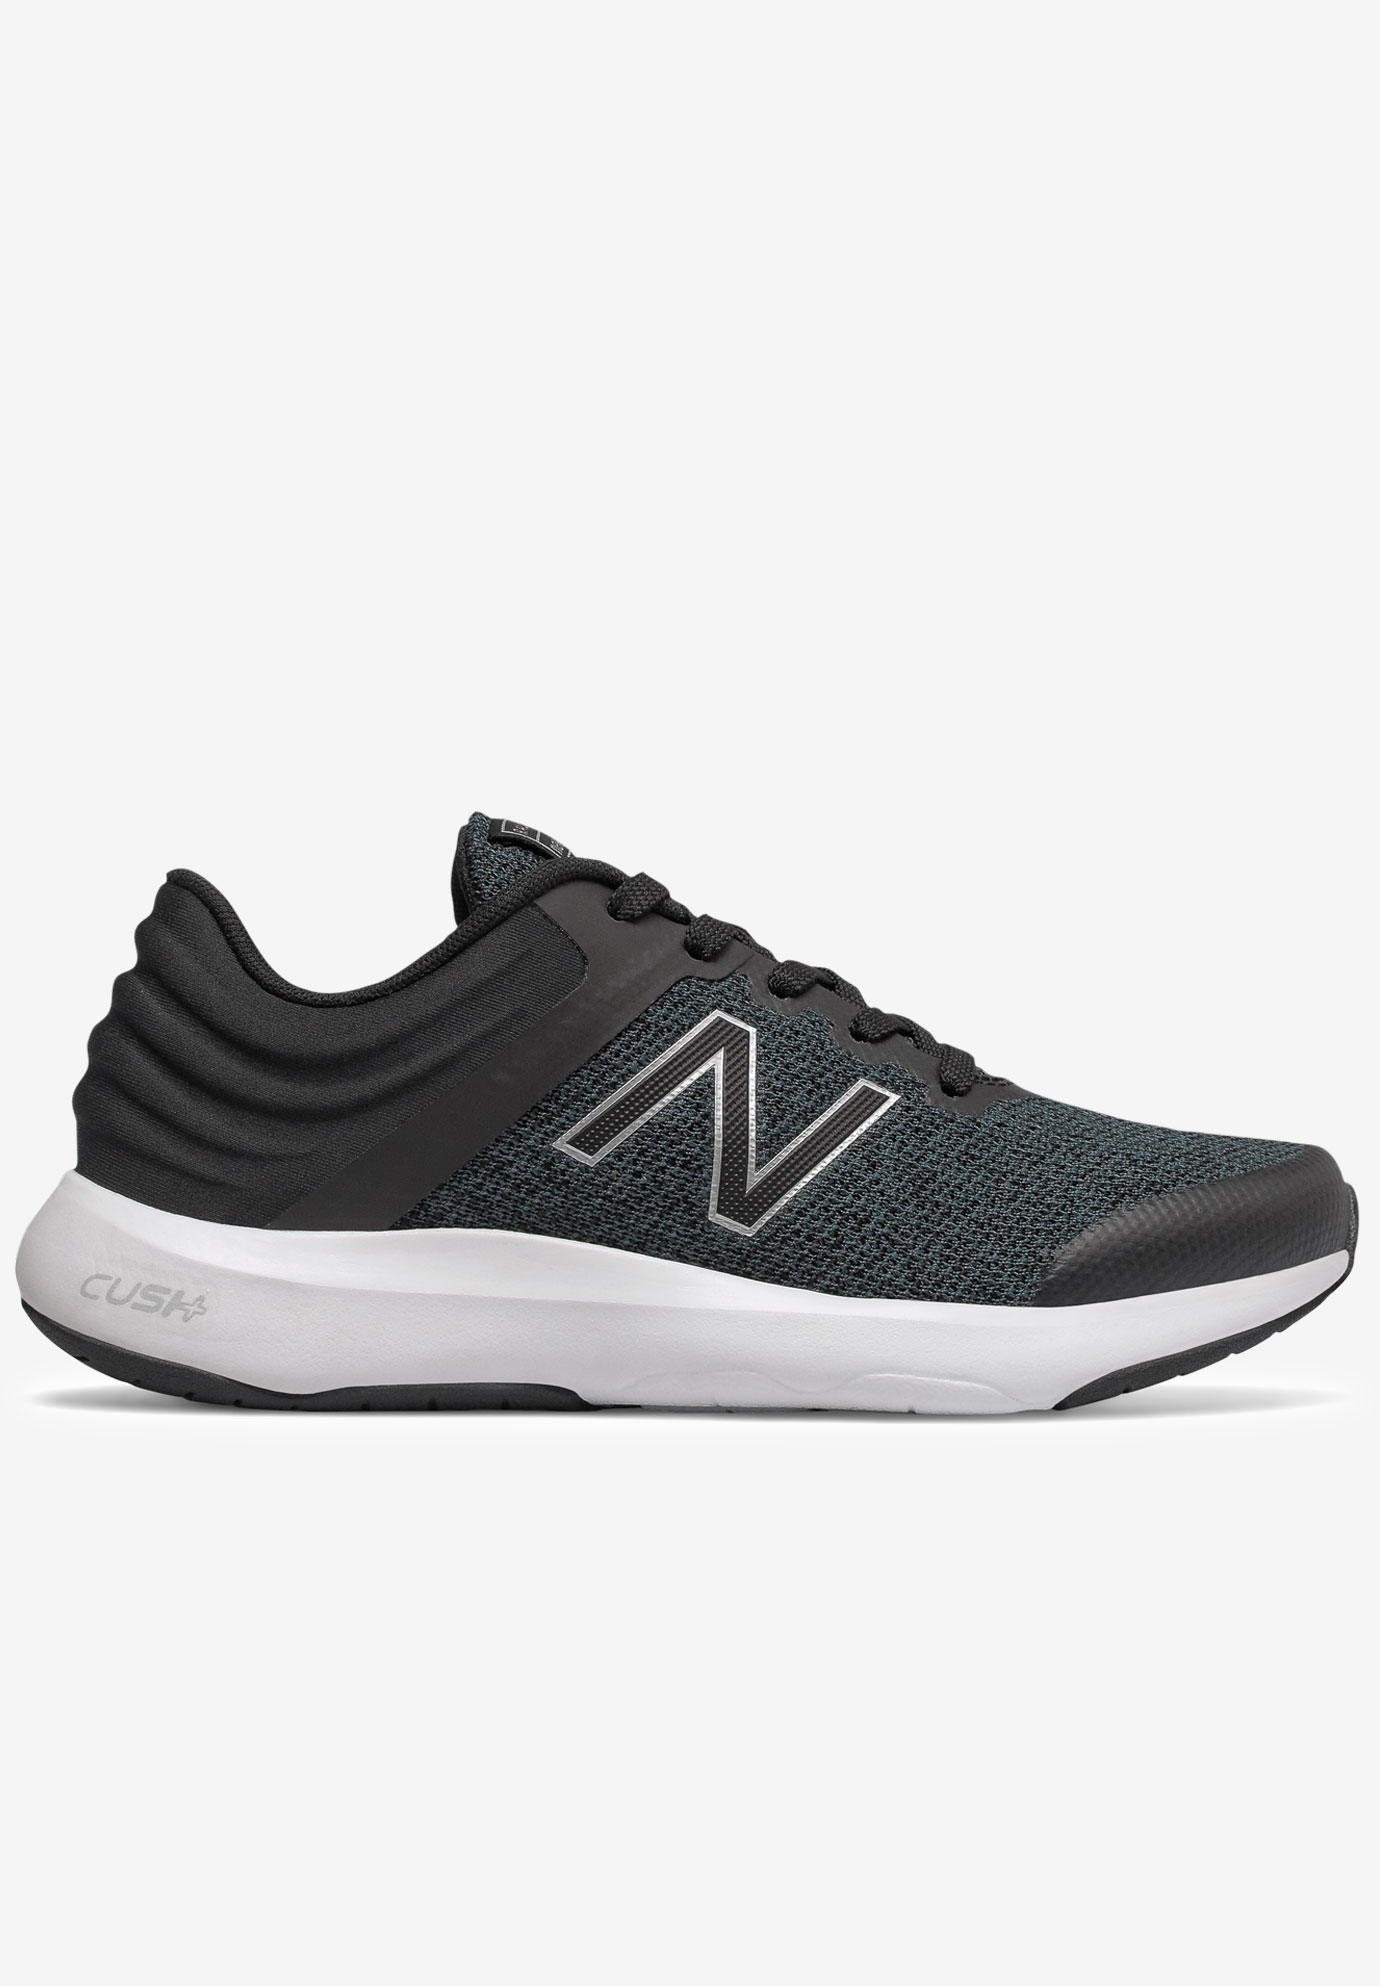 The Relax AV1 Sneaker by New Balance®,